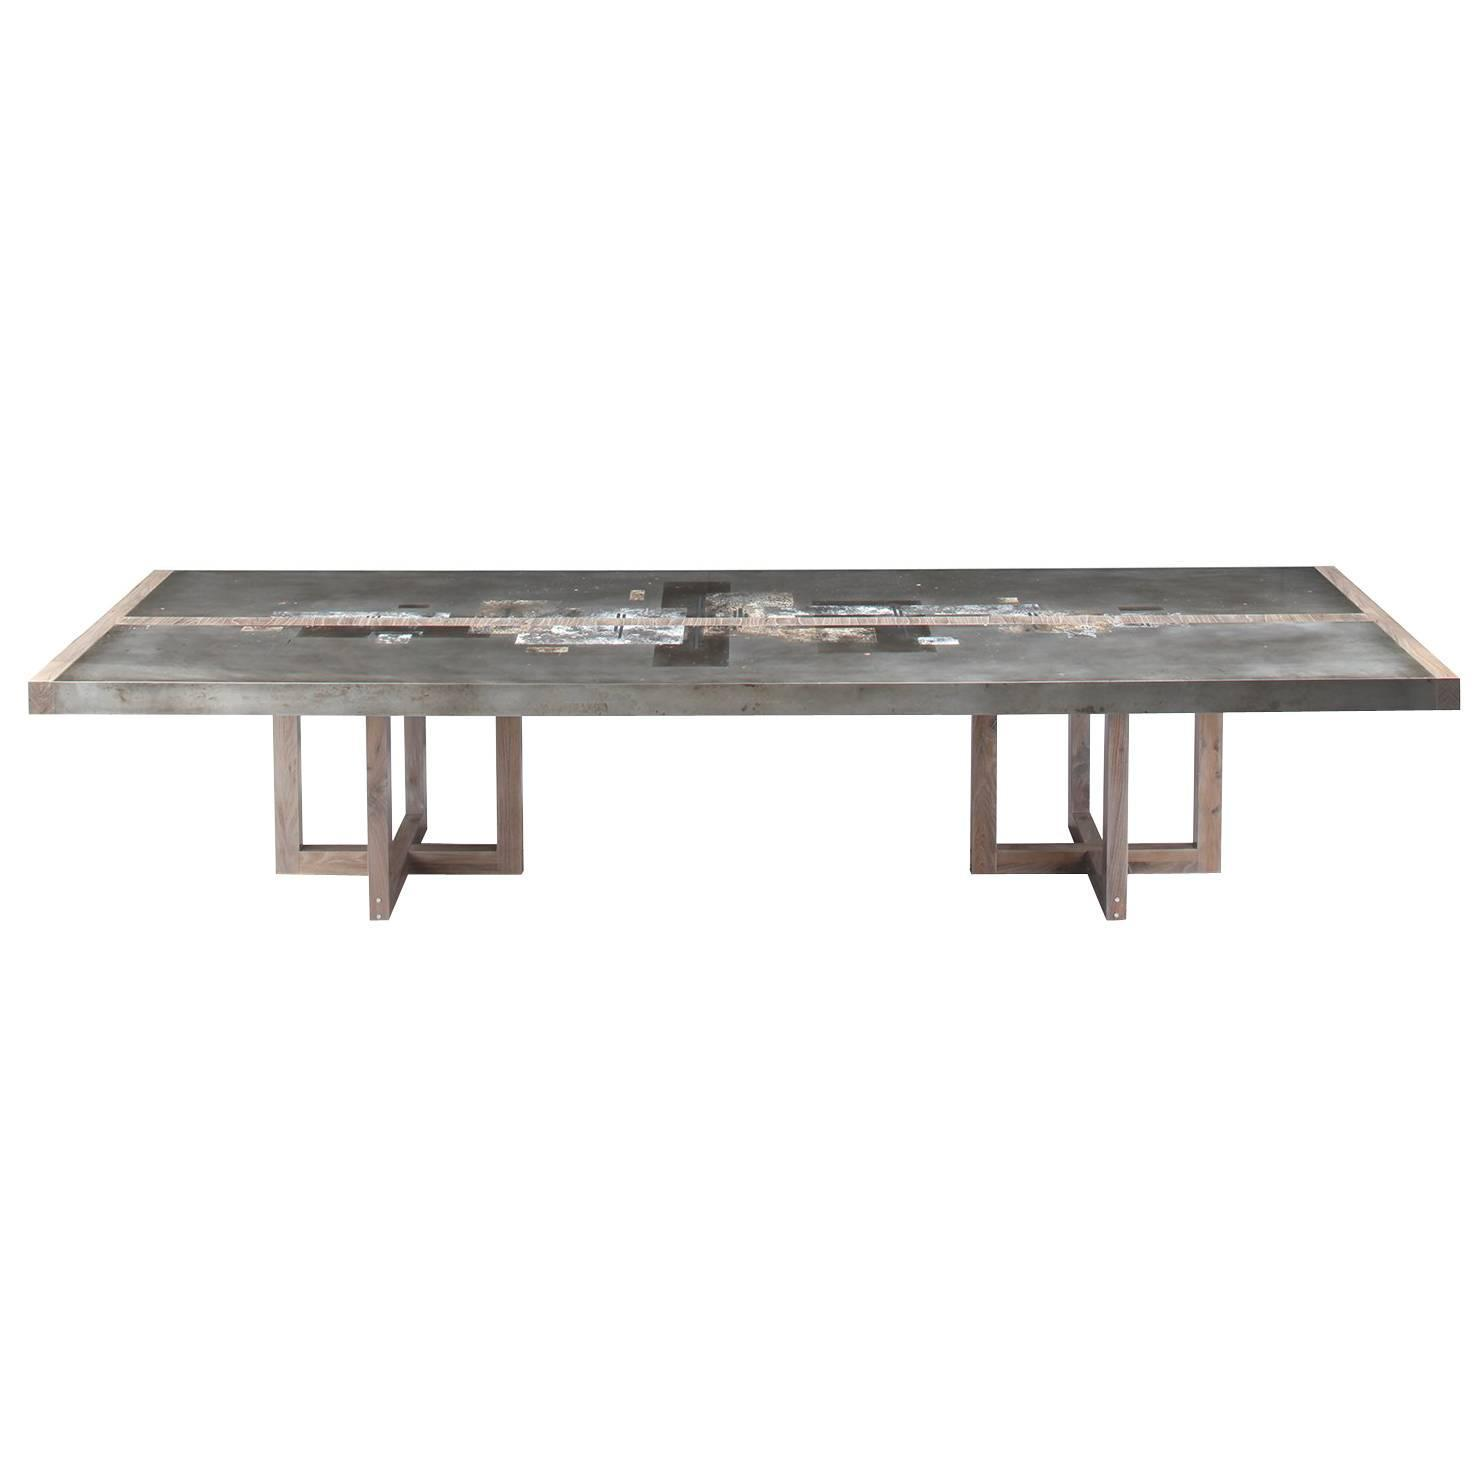 Zinc Dining Table French Contemporary Dining Room Tables 822 For Sale At 1stdibs